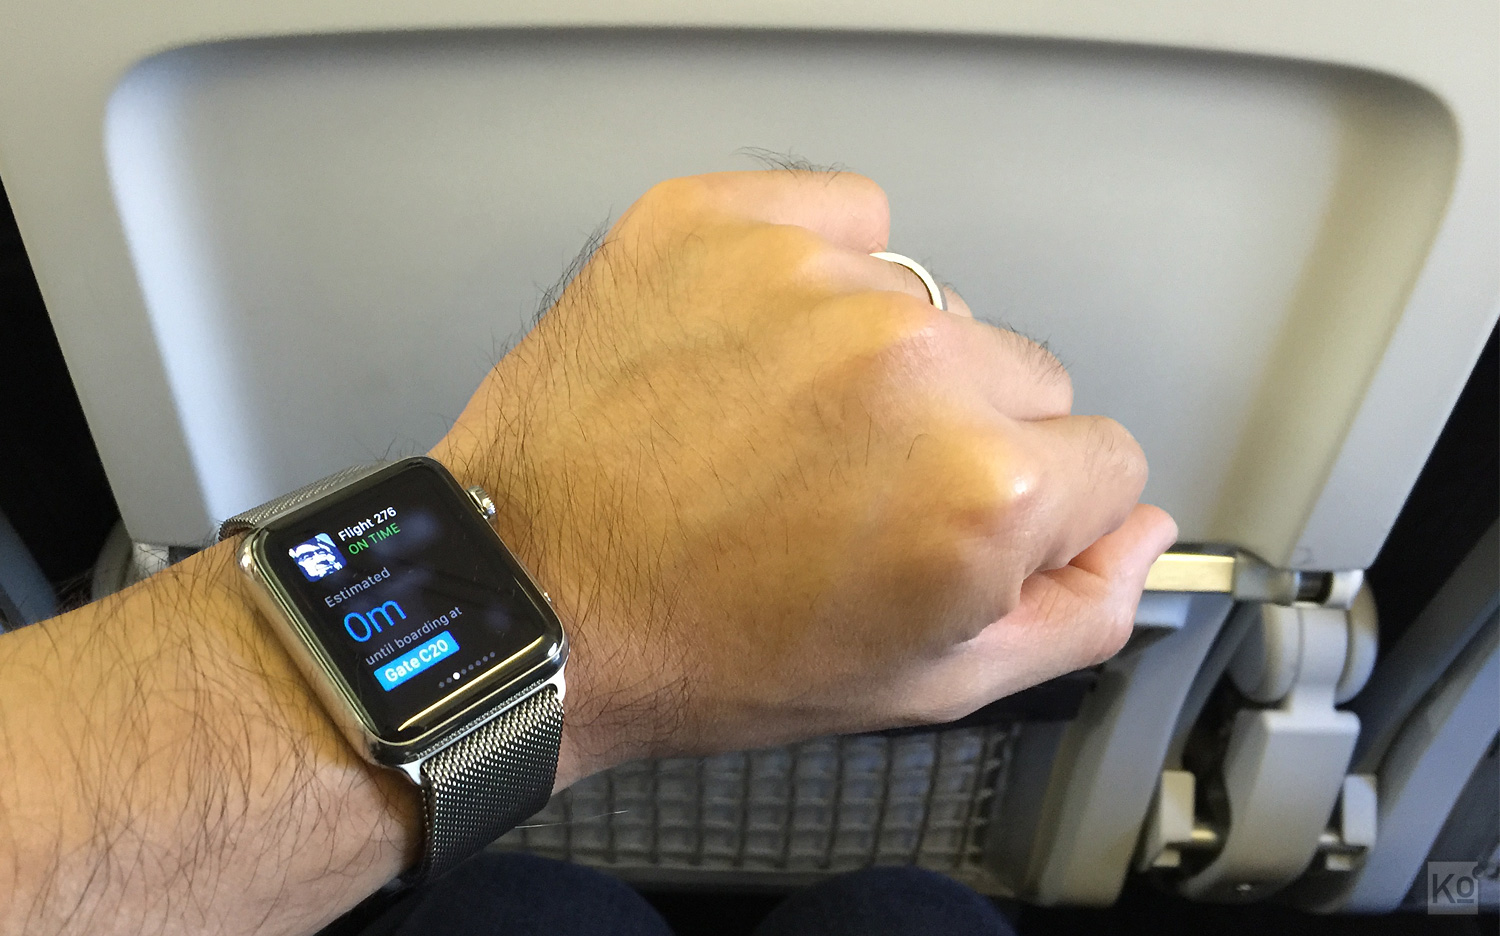 "What you're seeing here is something Apple calls a ""Glance."" That's a bite-sized chunk of information that I can quickly access by swiping up from the bottom of my Watch's display. Unlike notifications, Glances do require an underlying watchOS app. In this case, an Alaska Airlines app I have installed on my Watch is offering me this Glance of read-only information related to my flight. Tapping on the Glance would launch the Alaska Airlines app on my Watch, enabling me to get more info or perform some simple actions."